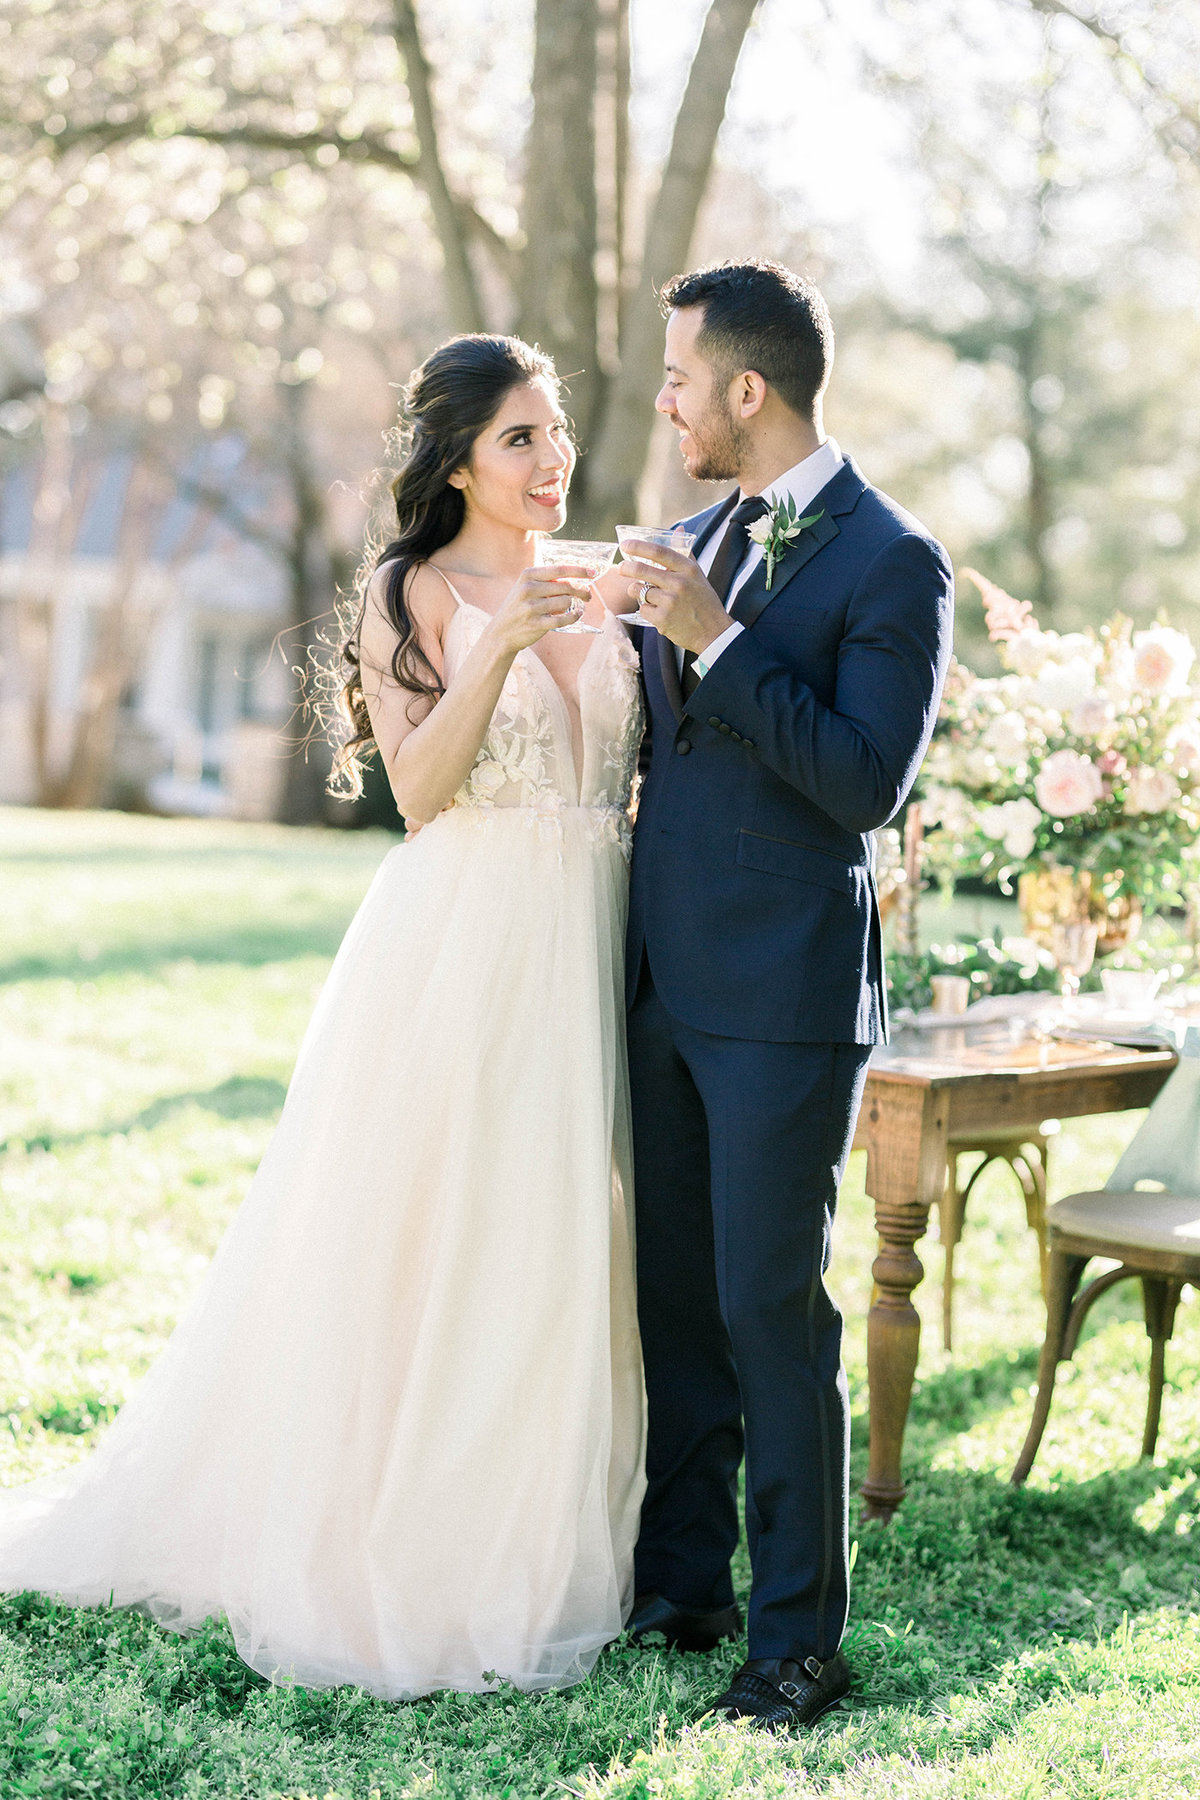 Cedarmont Nashville Editorial - Sarah Sunstrom Photography - Fine Art Wedding Photographer - 23